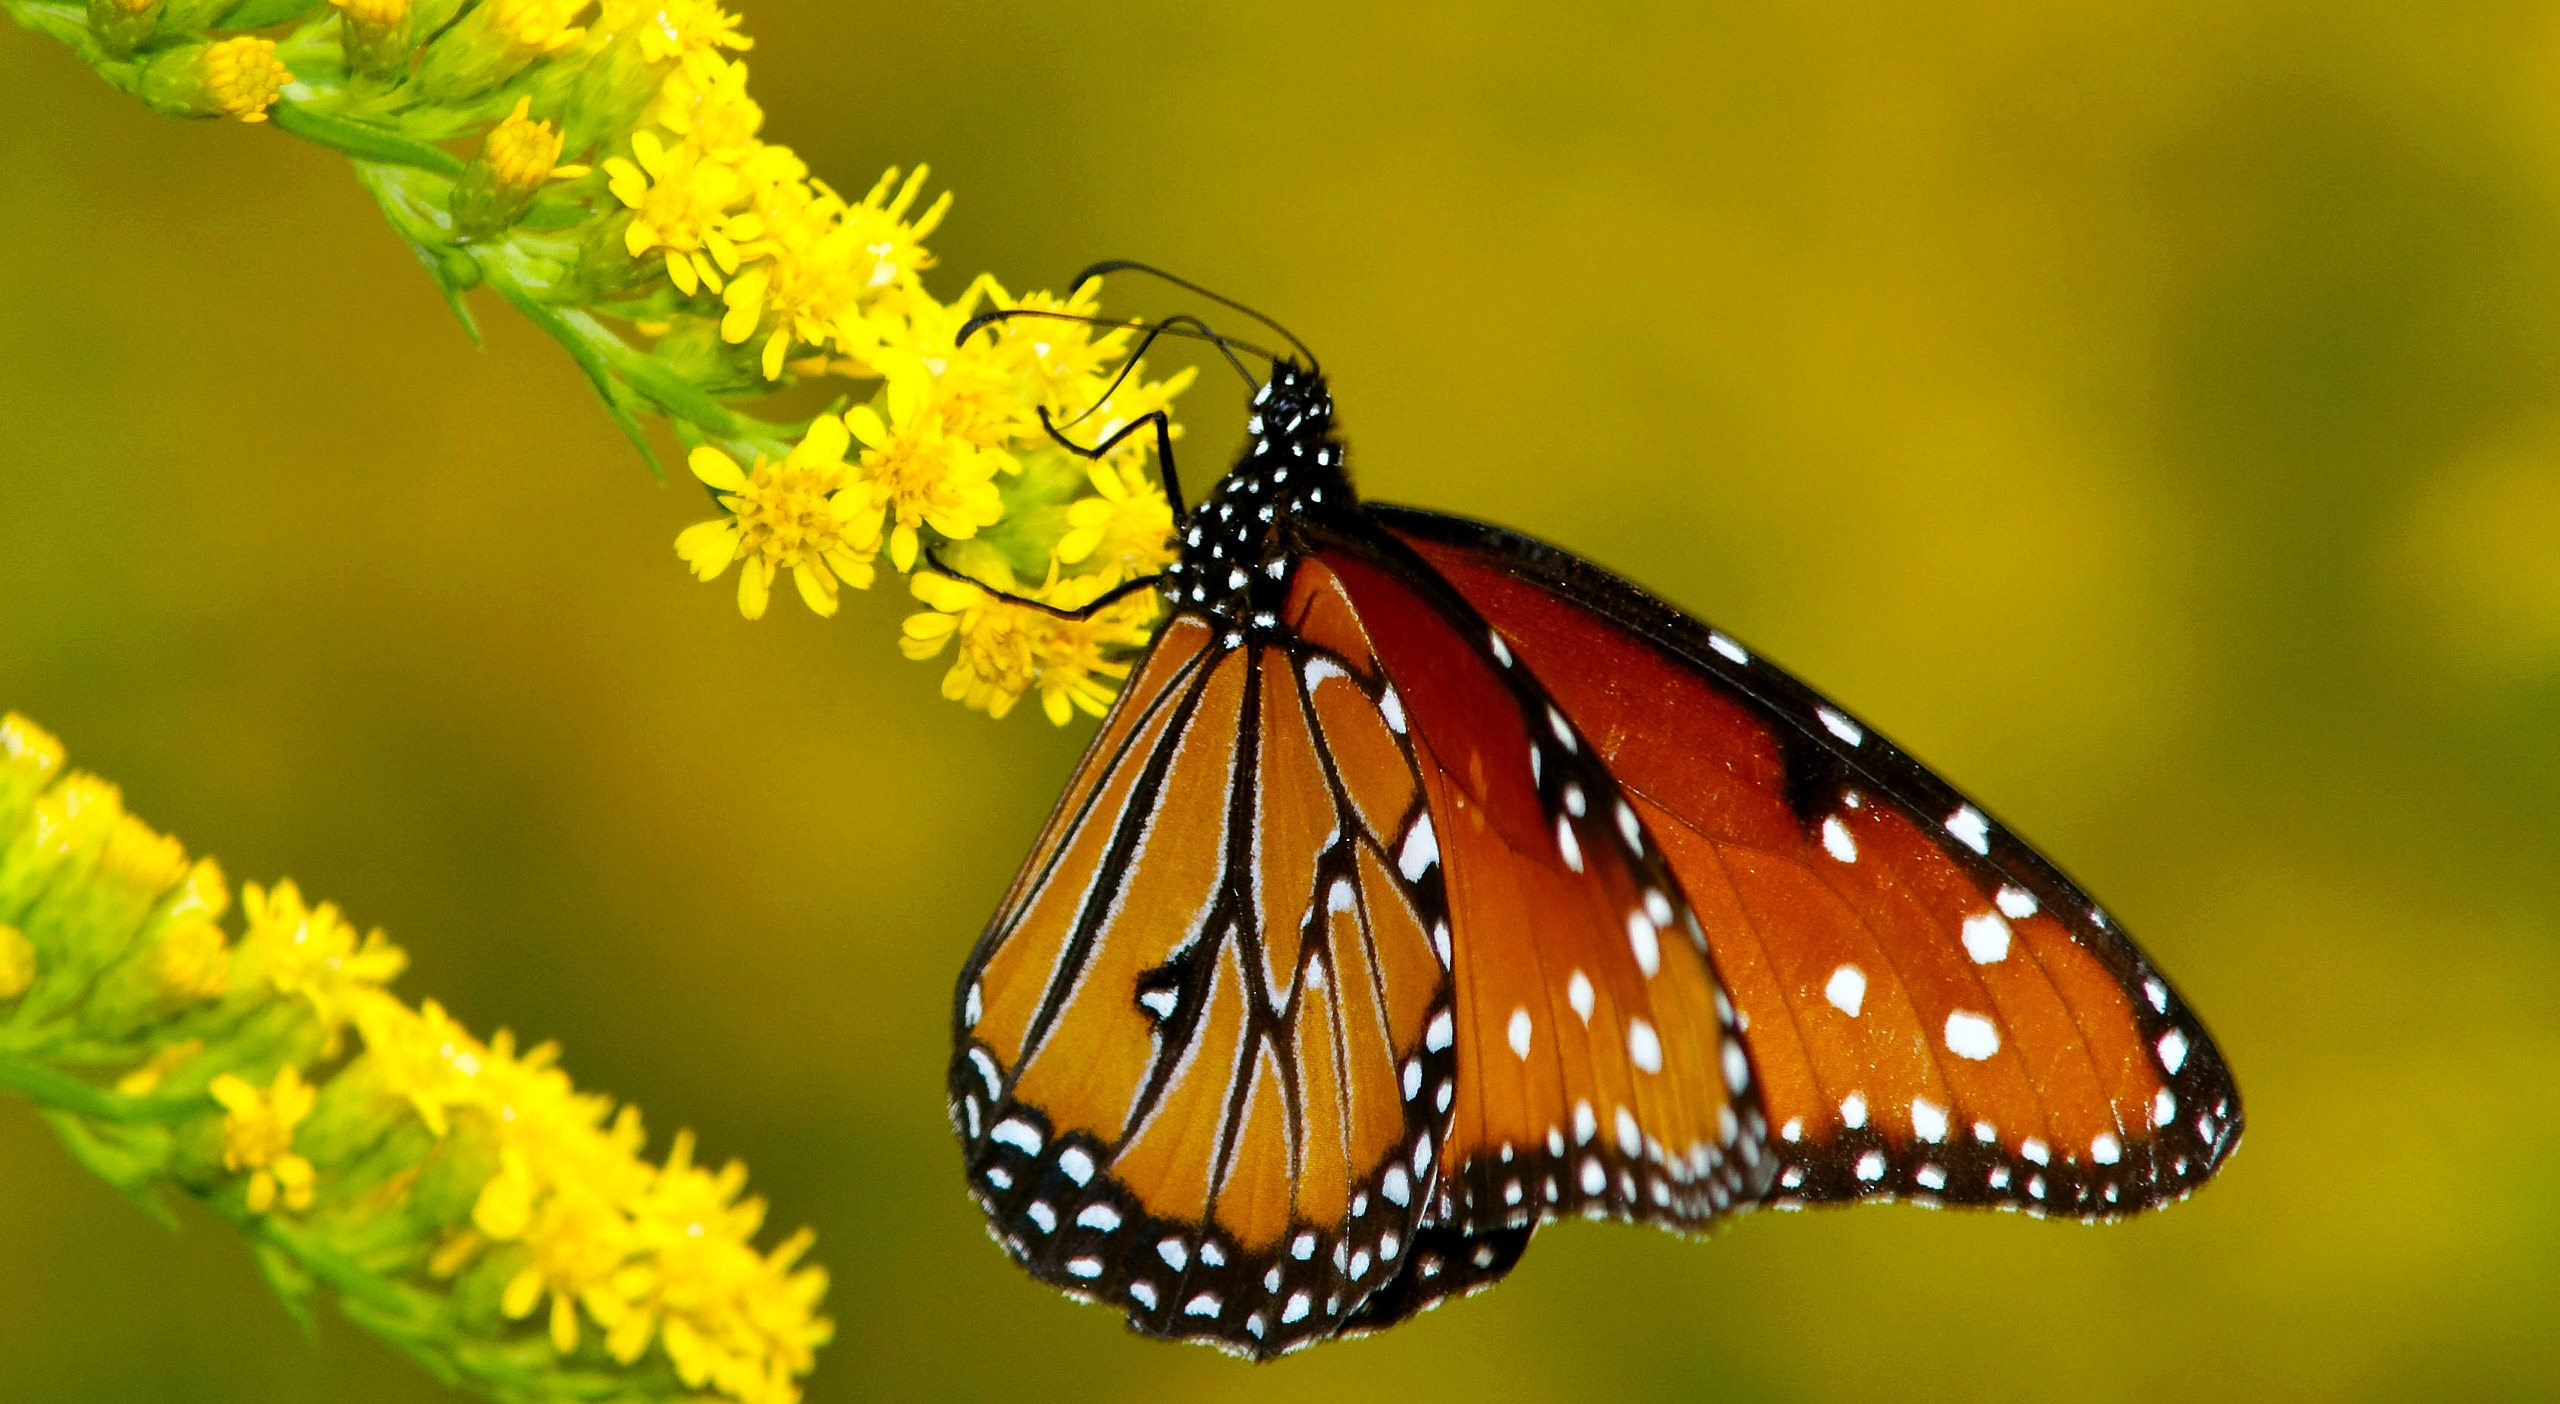 Agile Butterflies Background